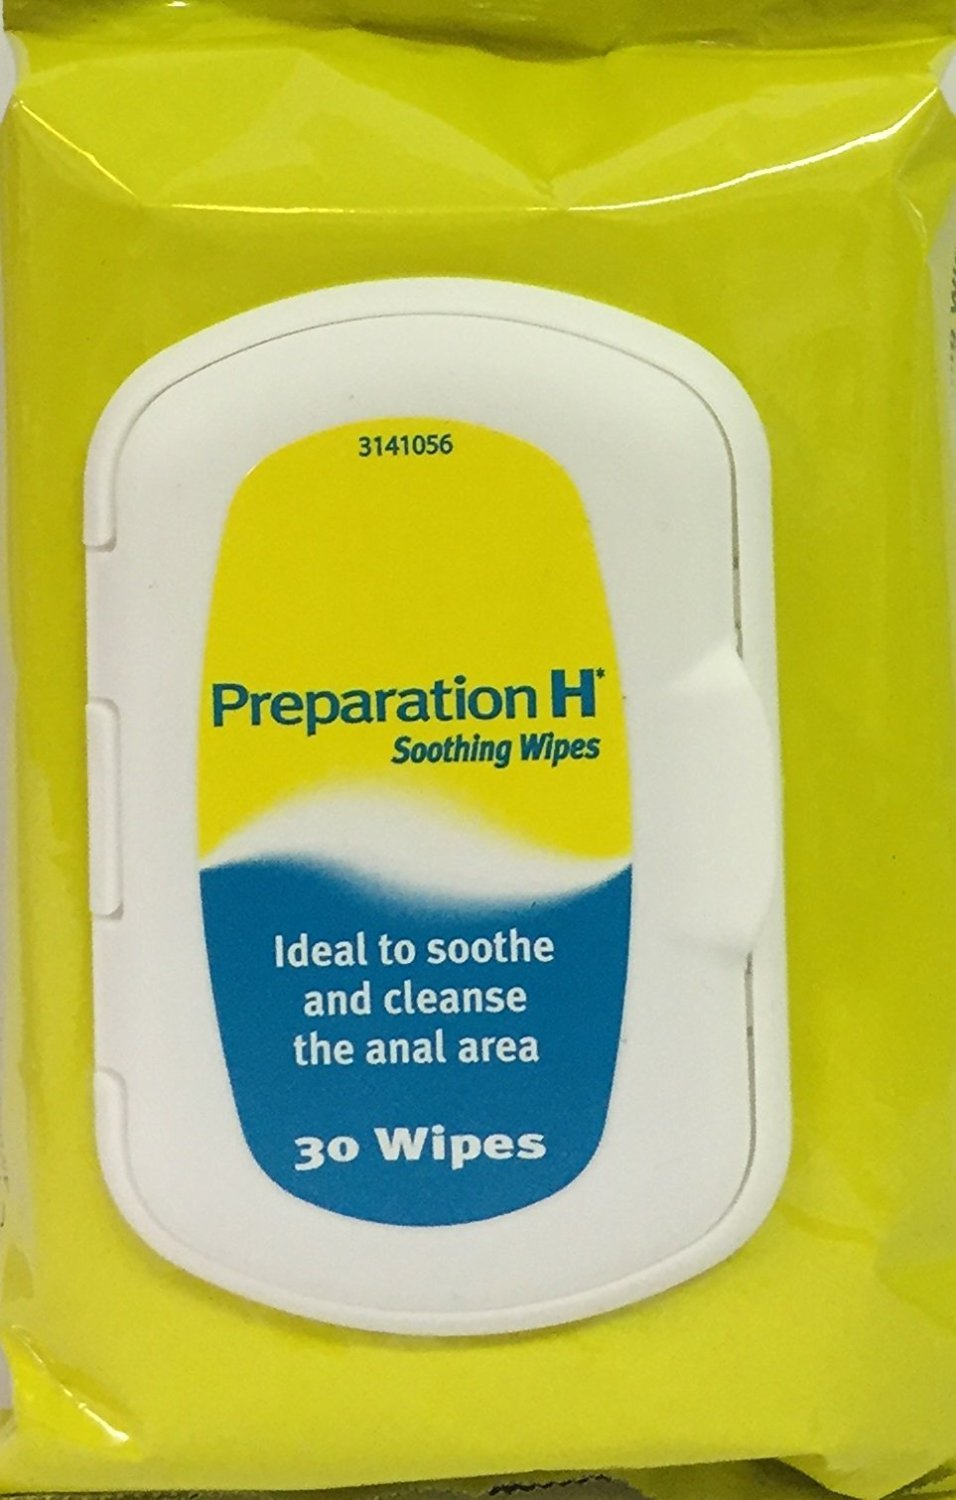 Preparation H 30 Soothing Wipes x 3 Packs